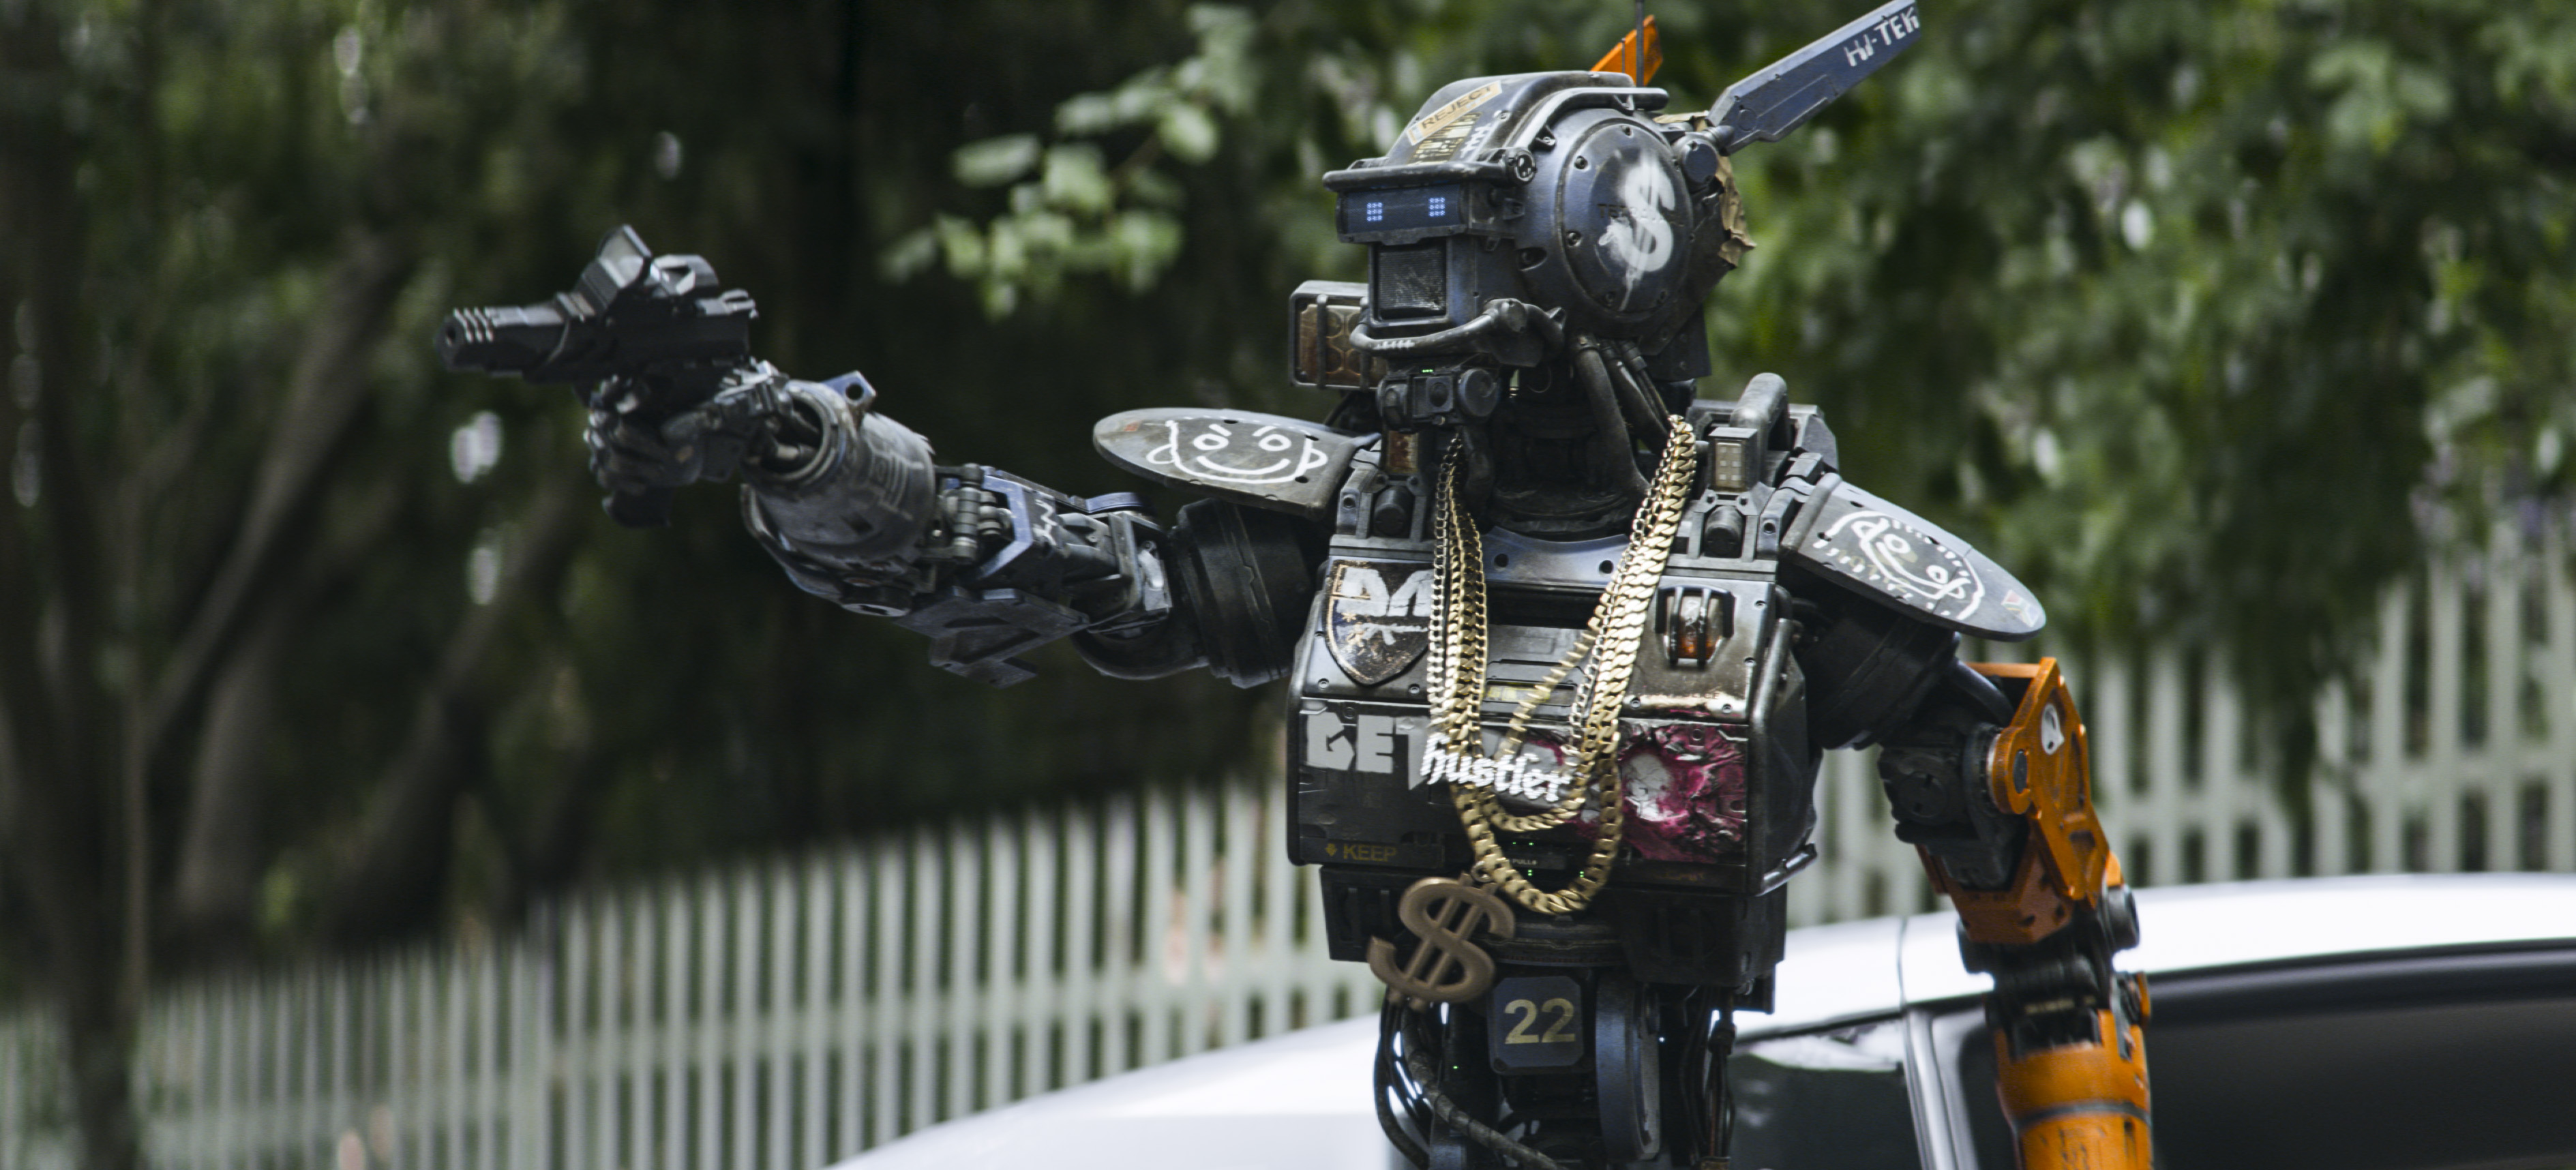 42 Chappie HD Wallpapers Background Images 3778x1716